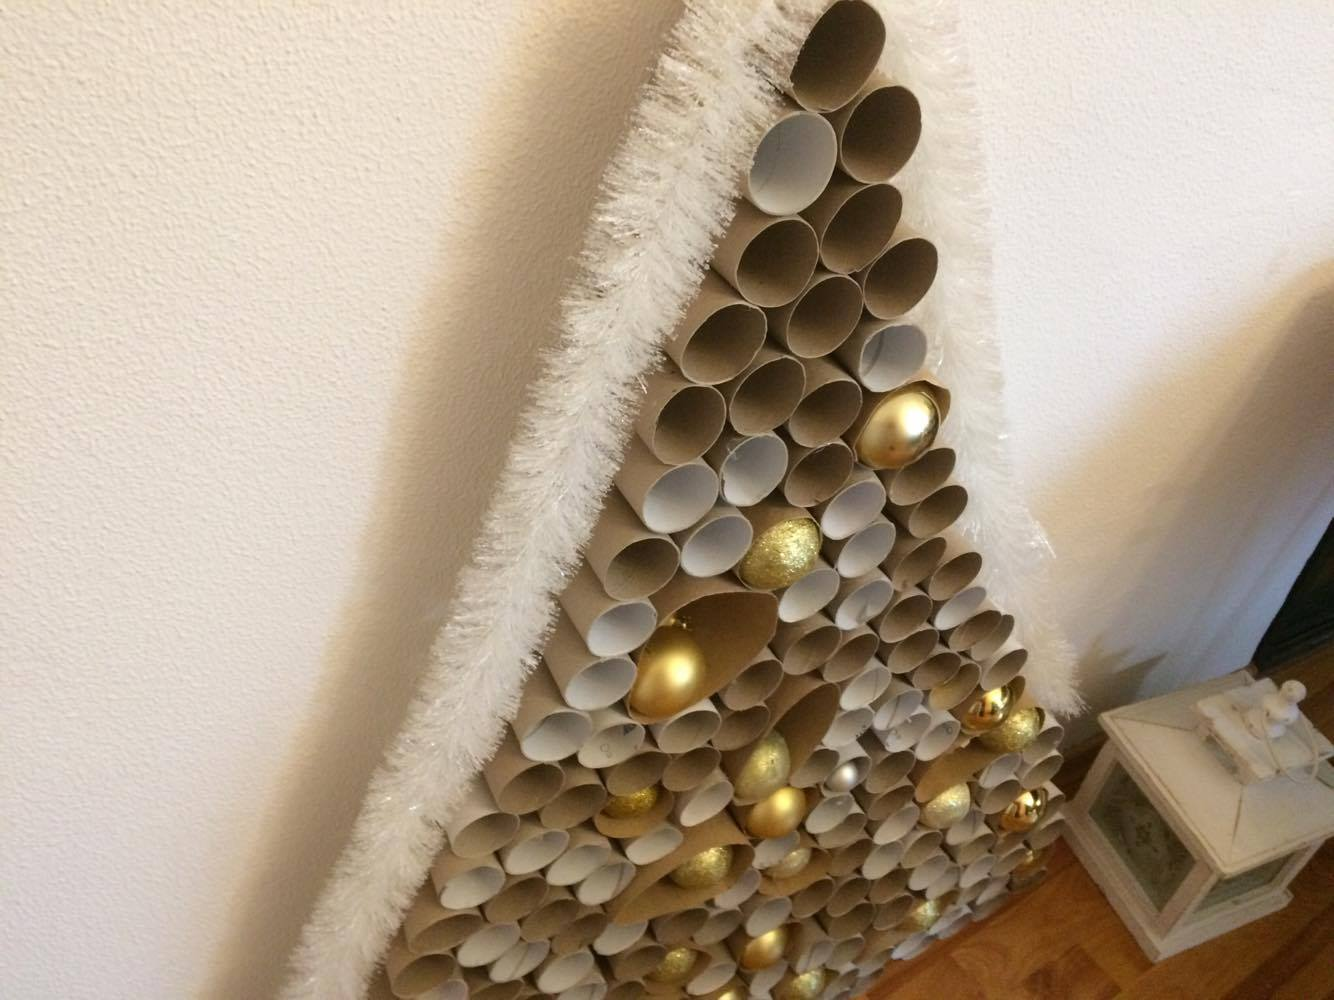 Paper christmas tree #diy #xmas #x-mas #christmas #christmasdecor #decoration #decoratingideas #festive #decorhomeideas